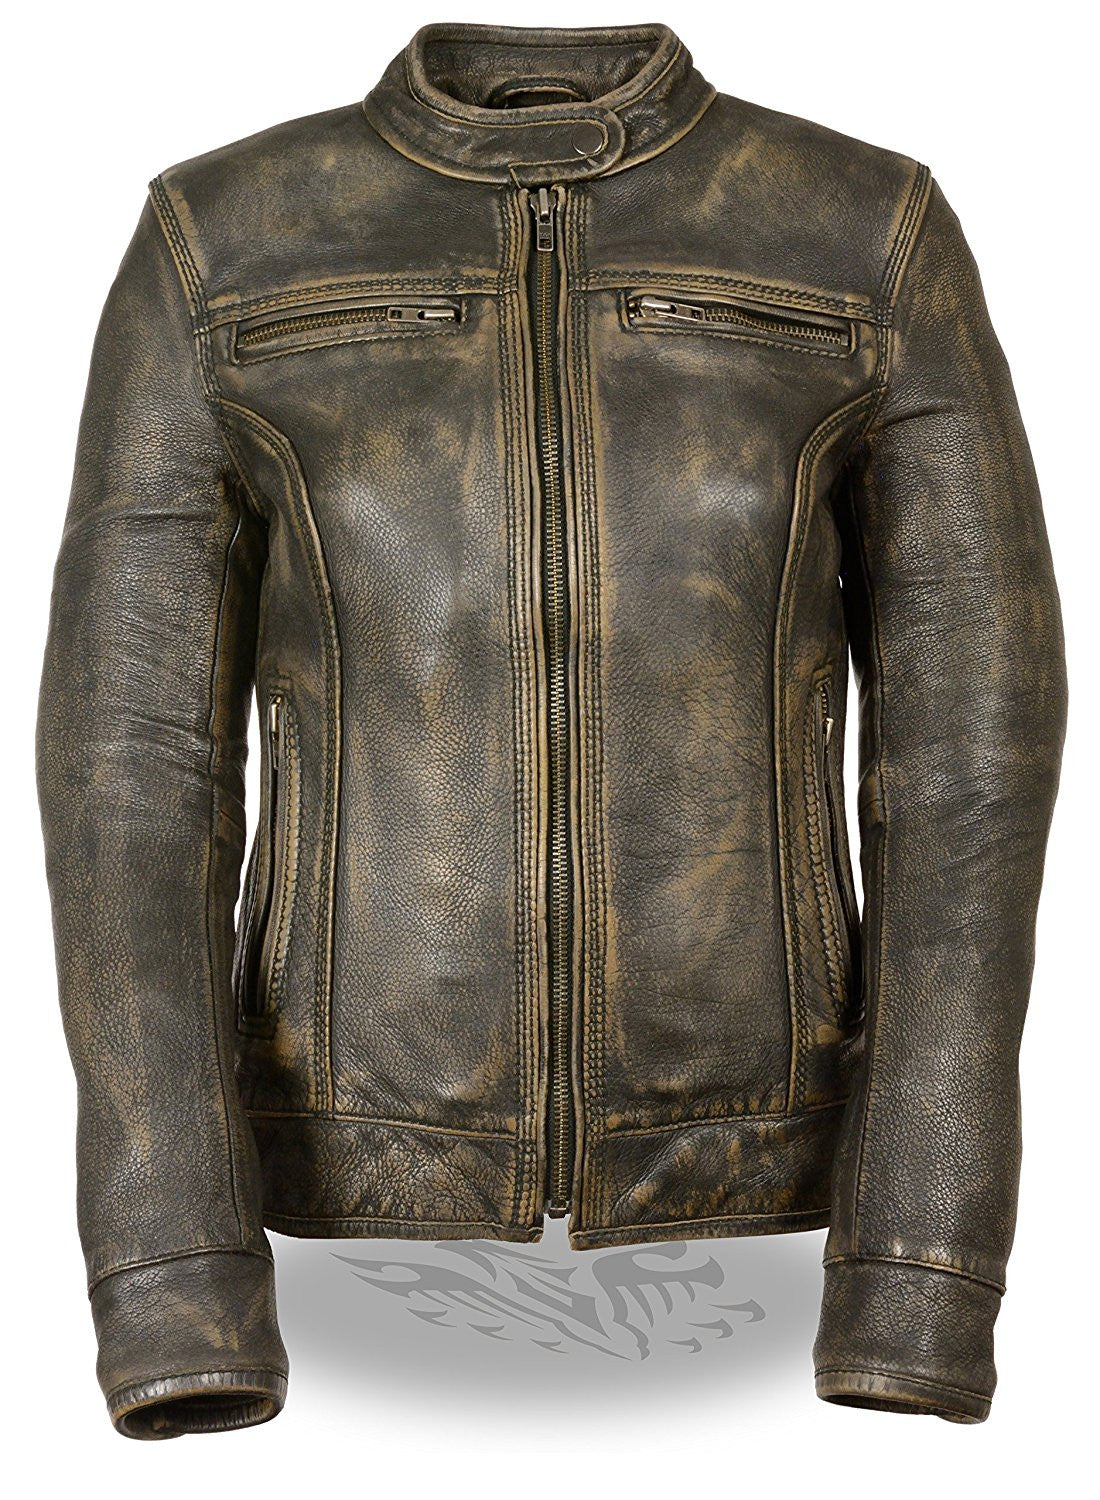 Ladies Distressed Brown Leather Scooter Jacket w/ Triple Stitch Detailing Motorcycle Jacket - Maine-Line Leather - 1